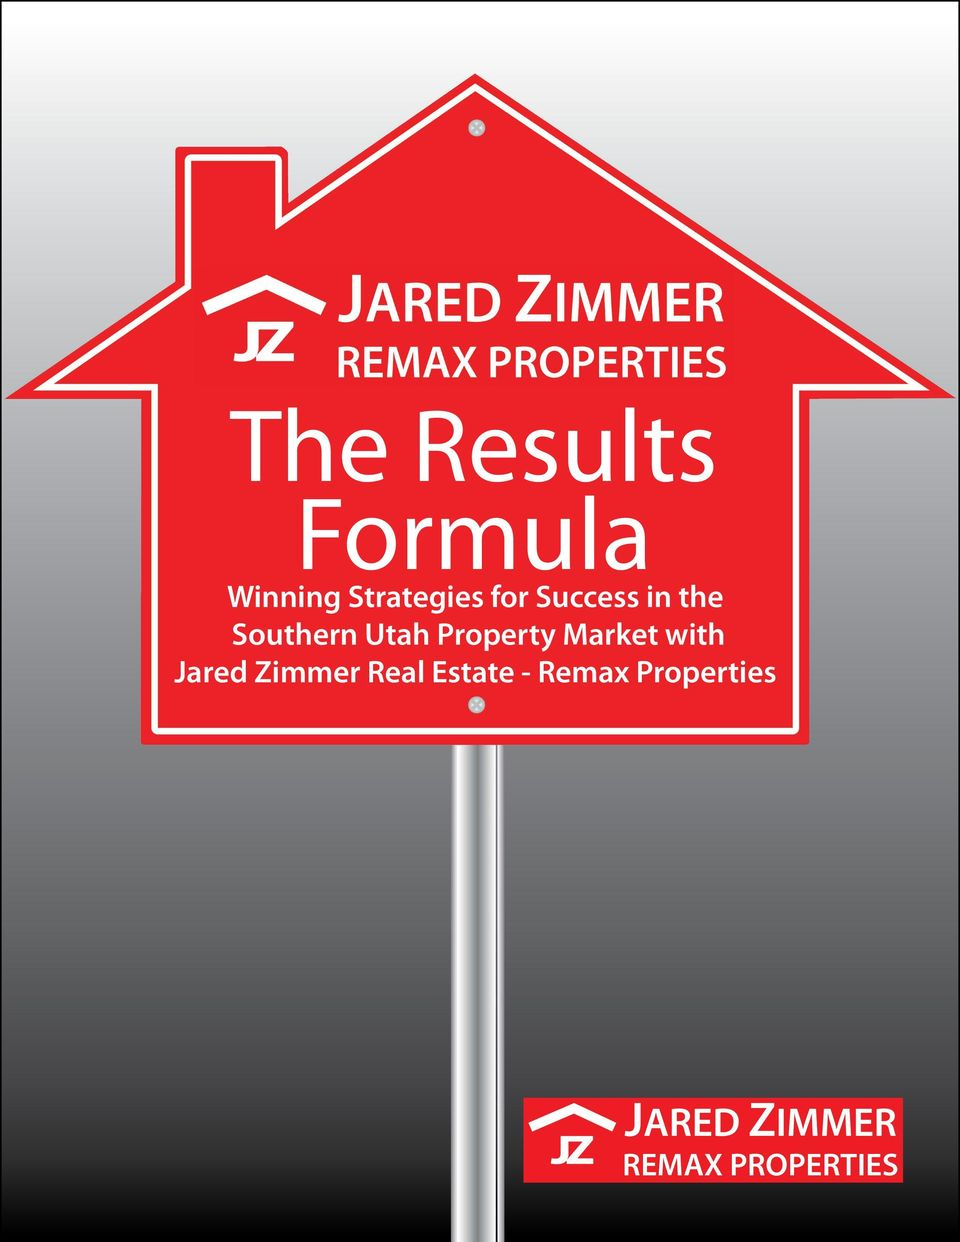 Market with Jared Zimmer Real Estate -